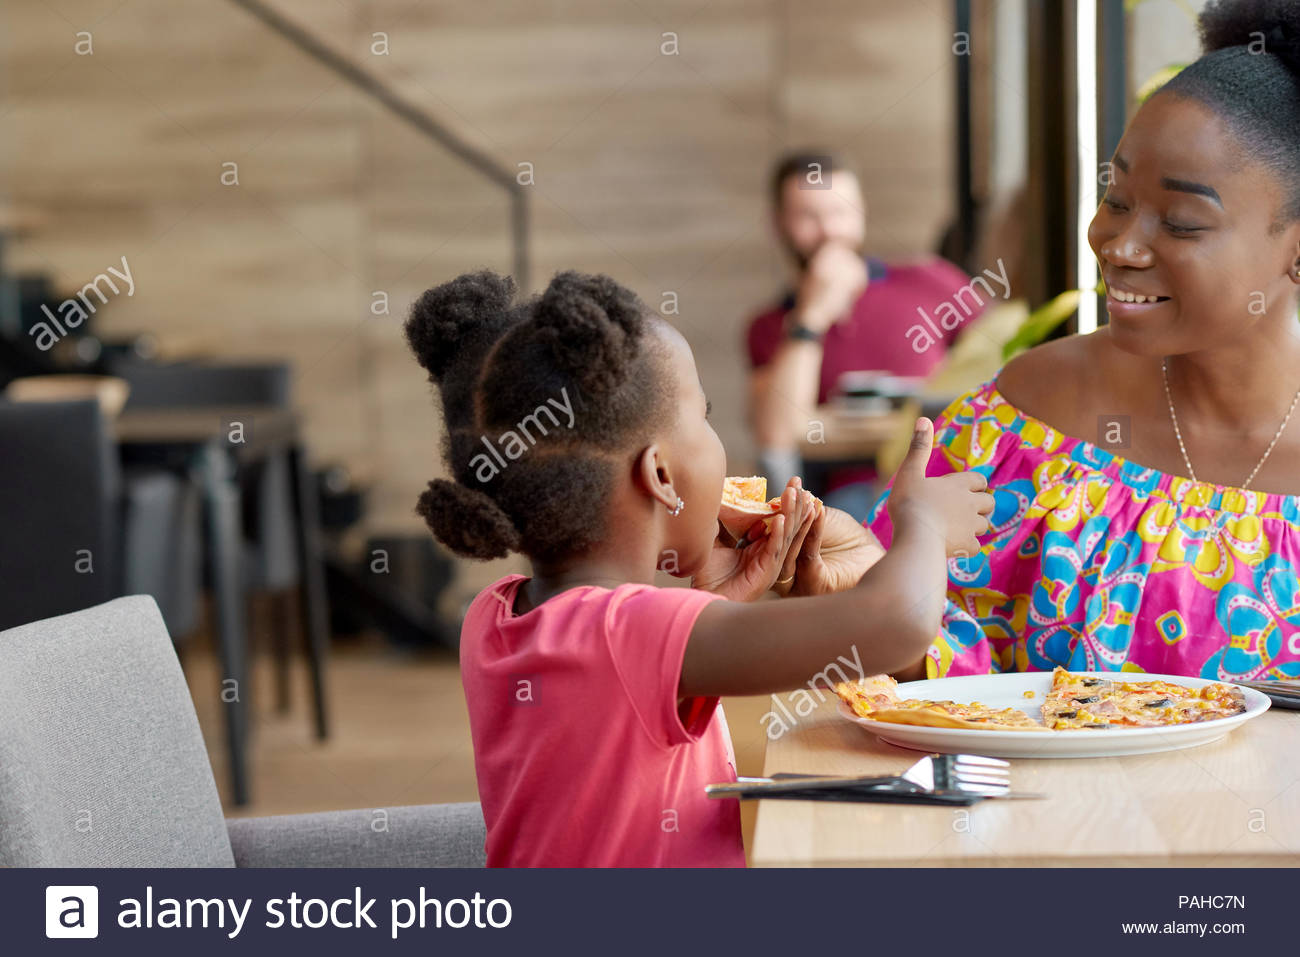 Happy mother feeding child delicious pizza sitting in local restaurant. Smiling, having good mood, wonderful time together, lovely family. Other clients sitting in cafe's background. Loft interior. - Stock Image